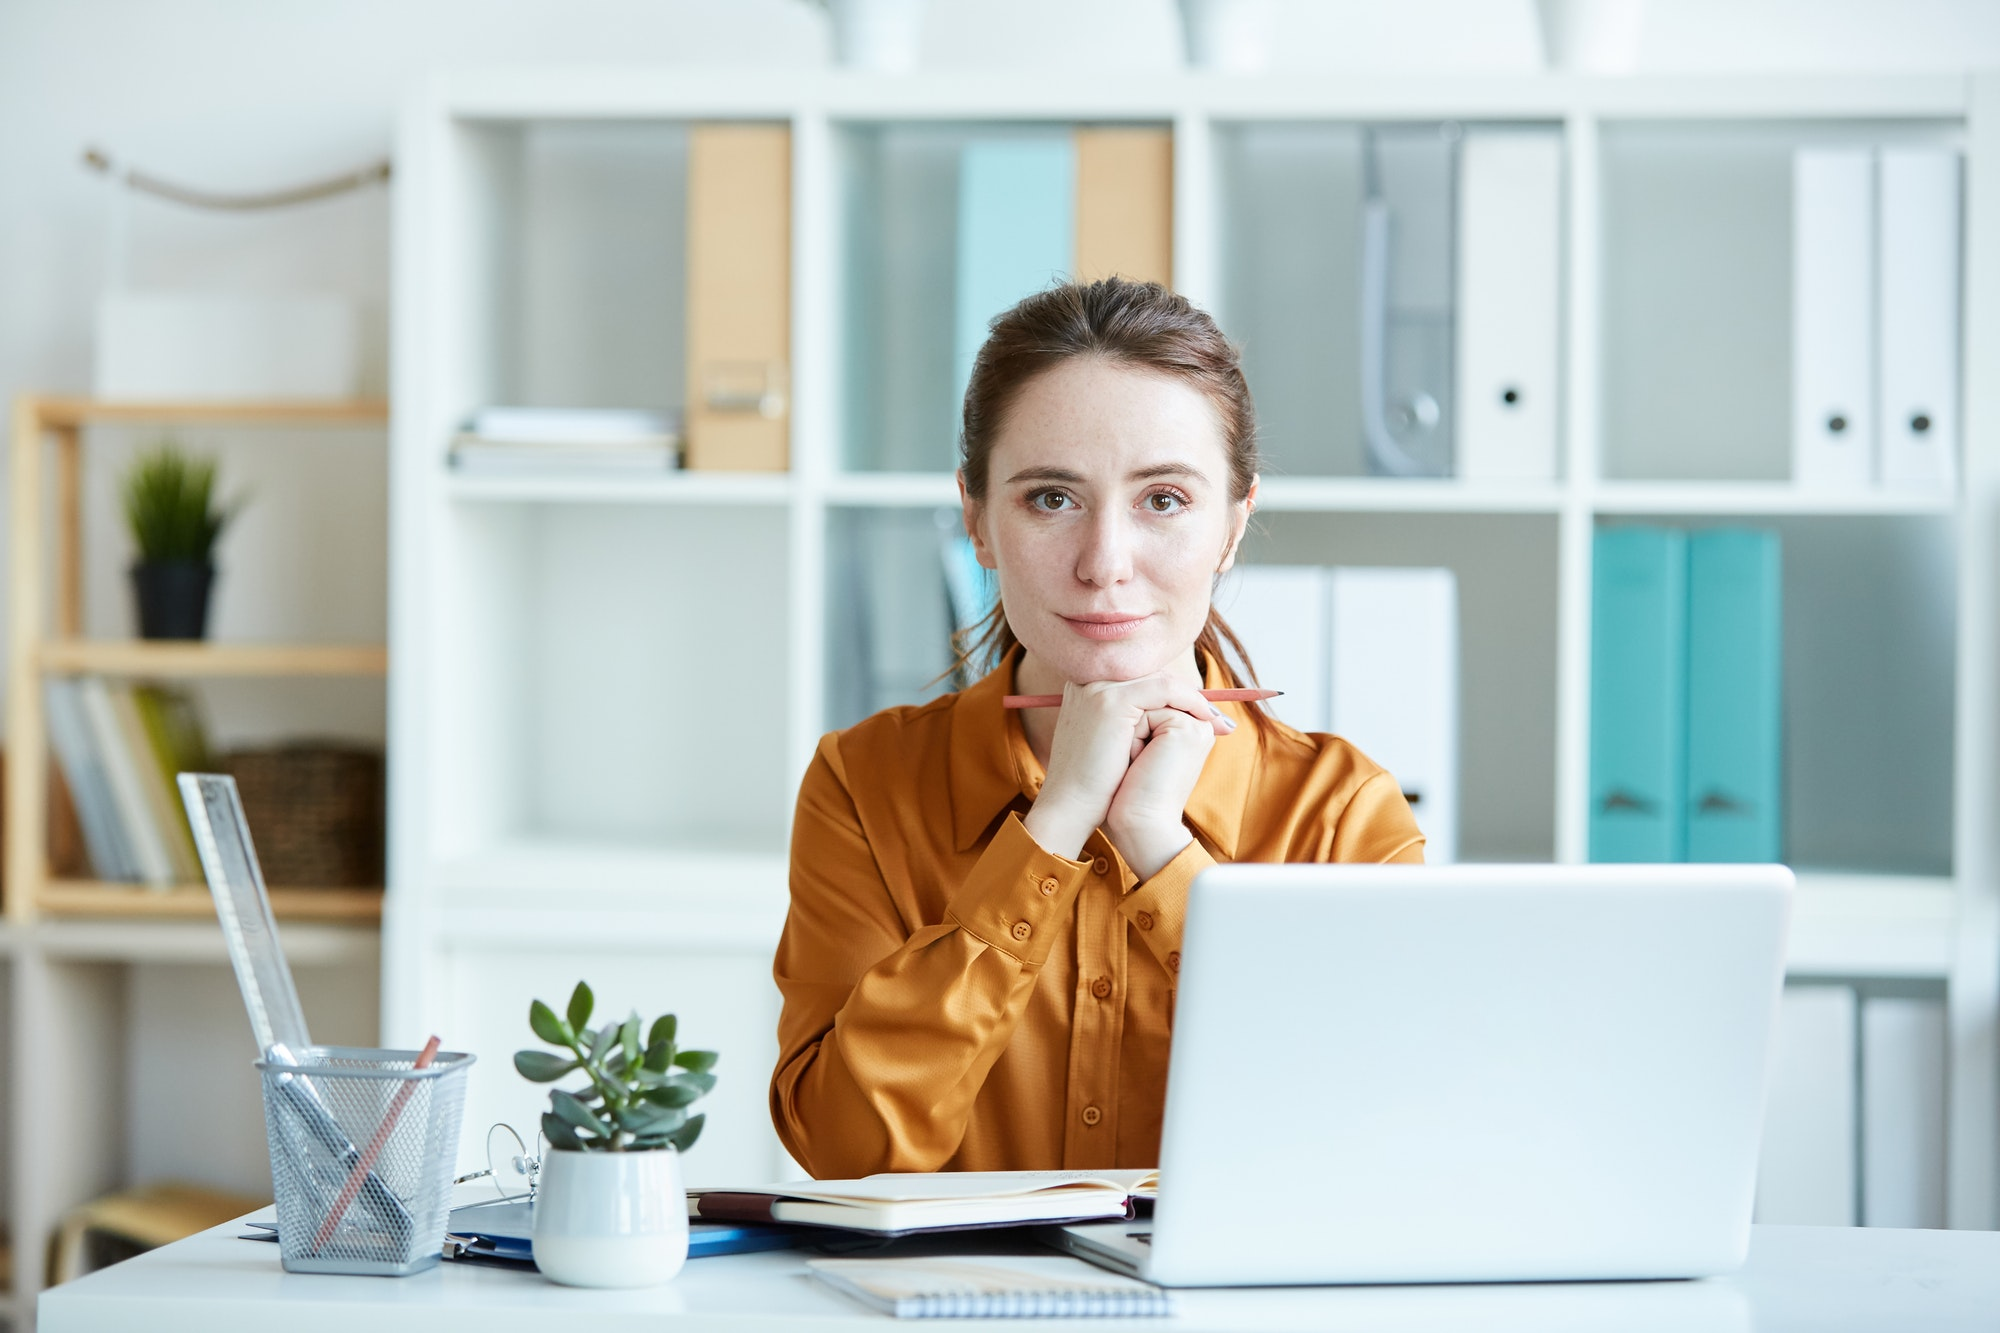 Female leader working at office